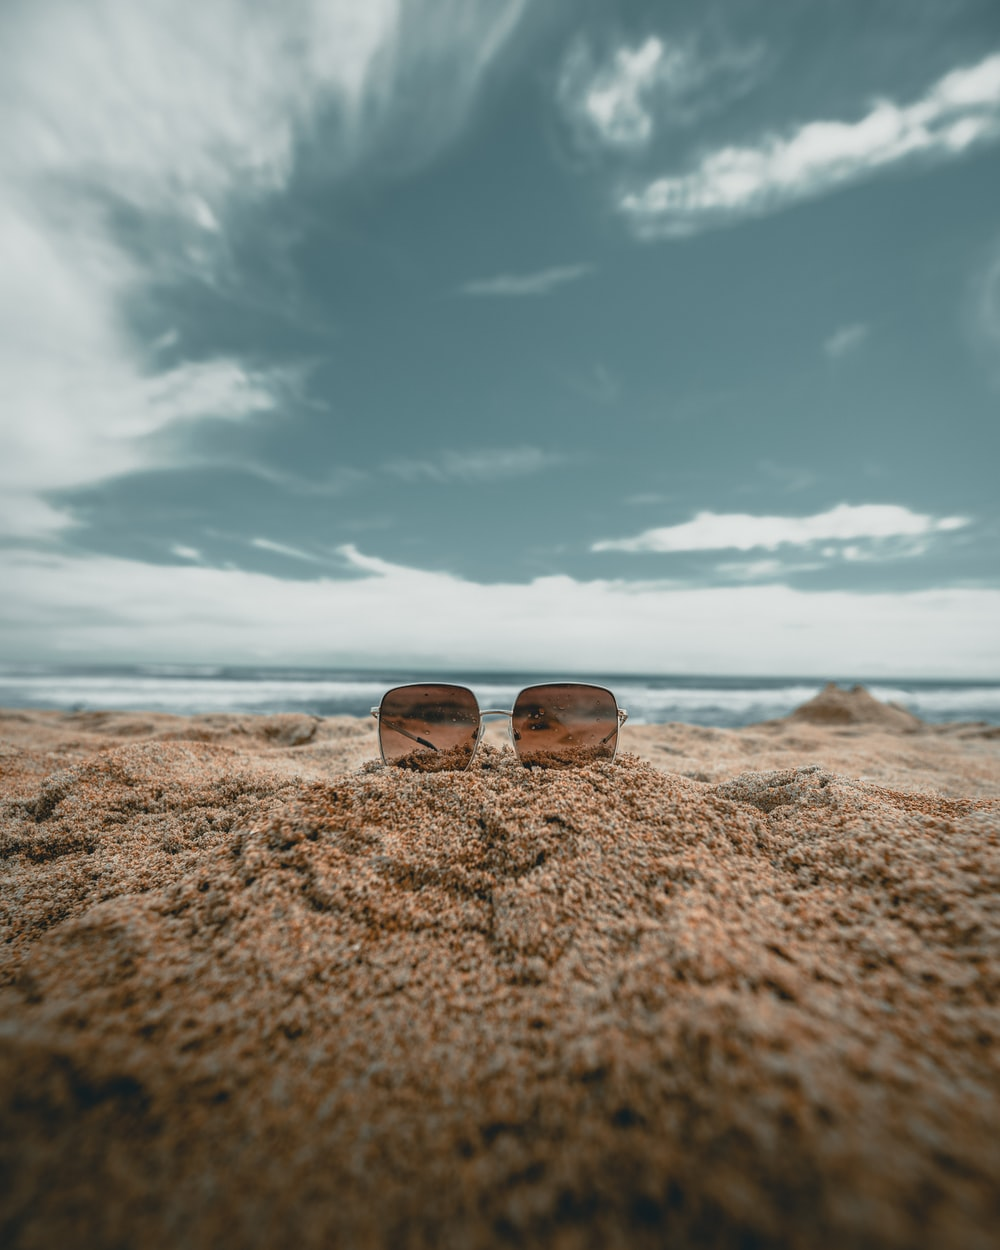 brown lens sunglasses on sand in low angle photography photography